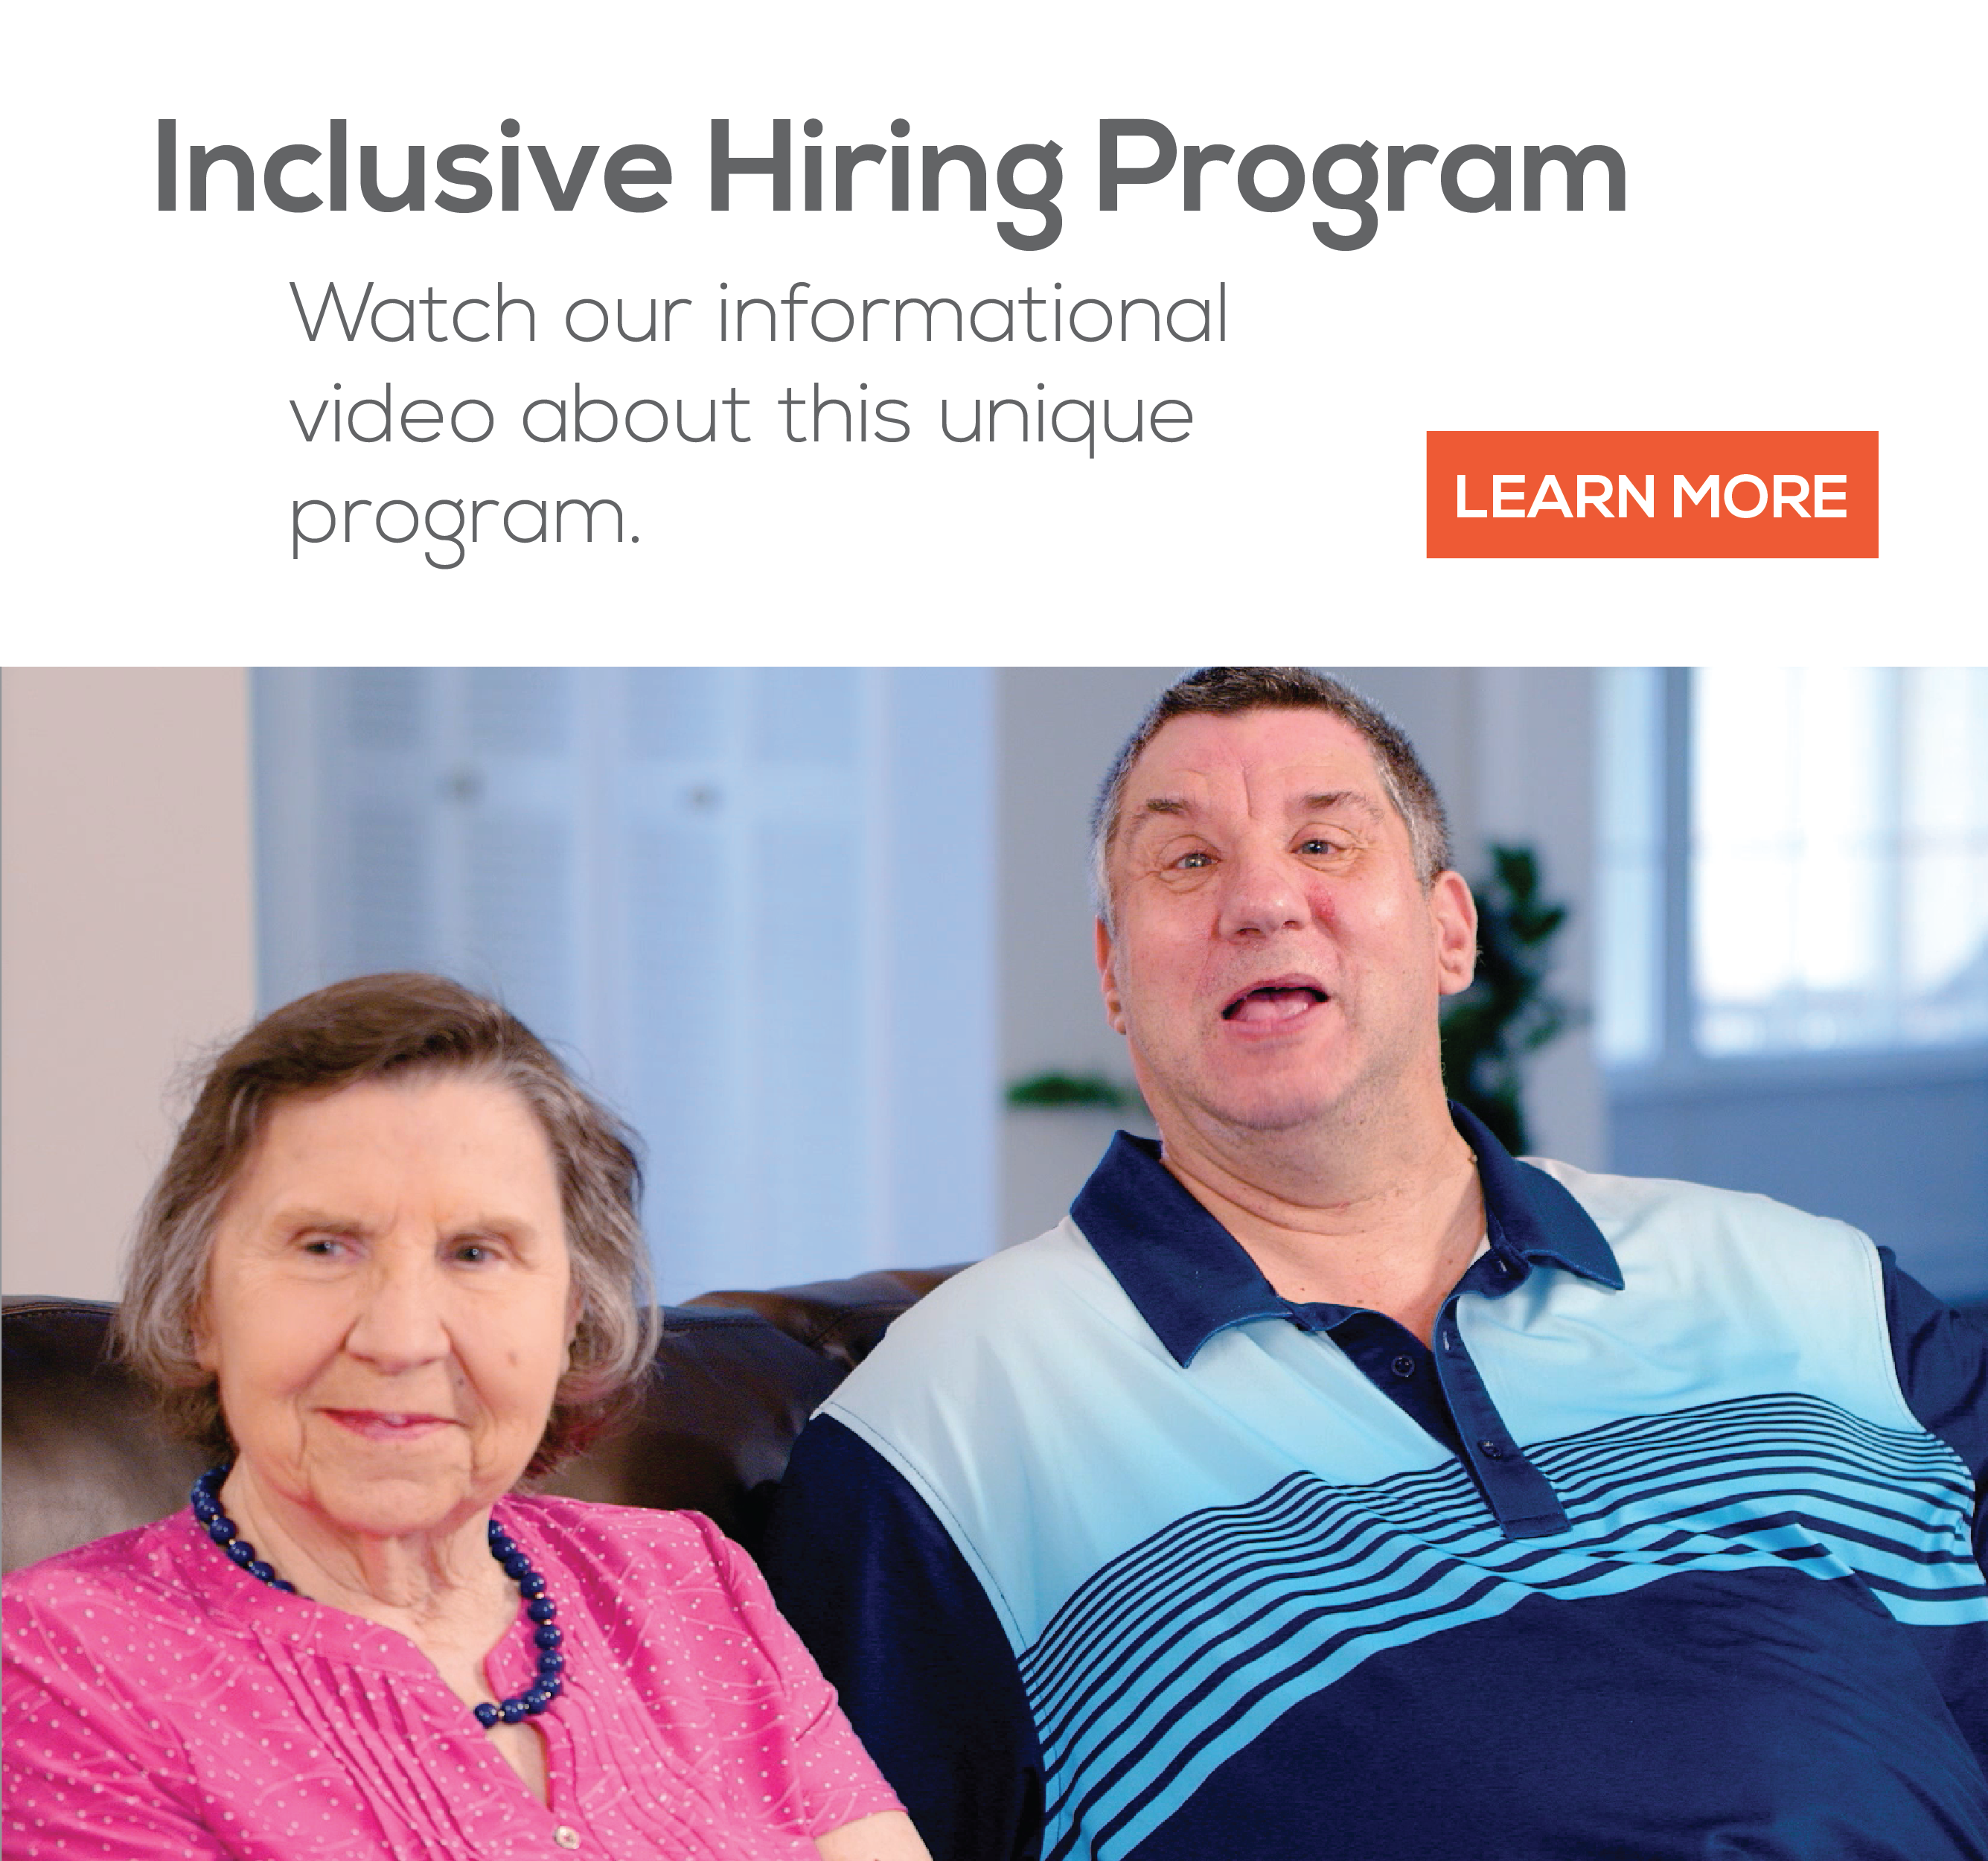 Inclusive Hiring Program